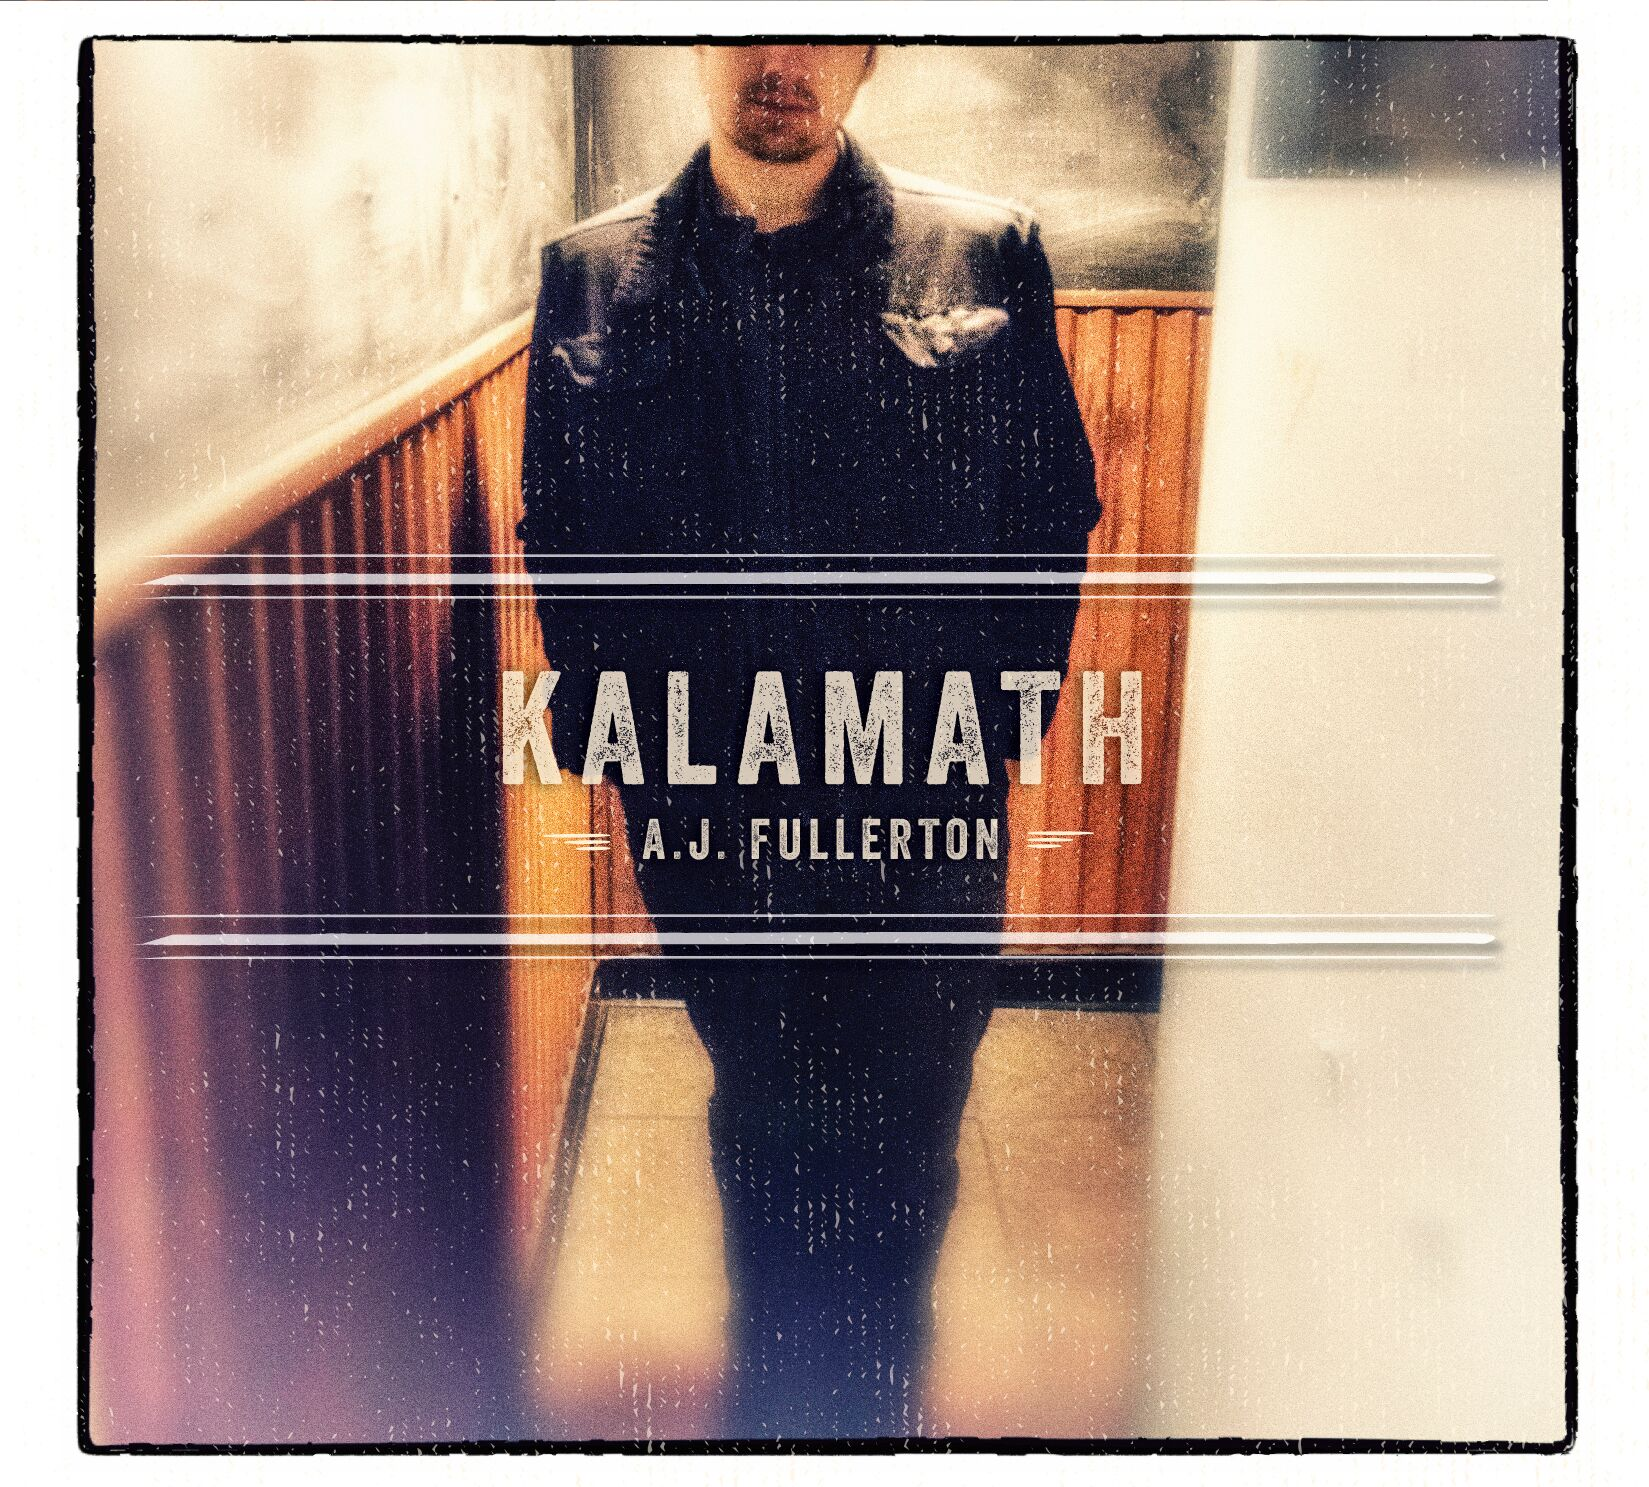 Kalamath Album Cover.jpg